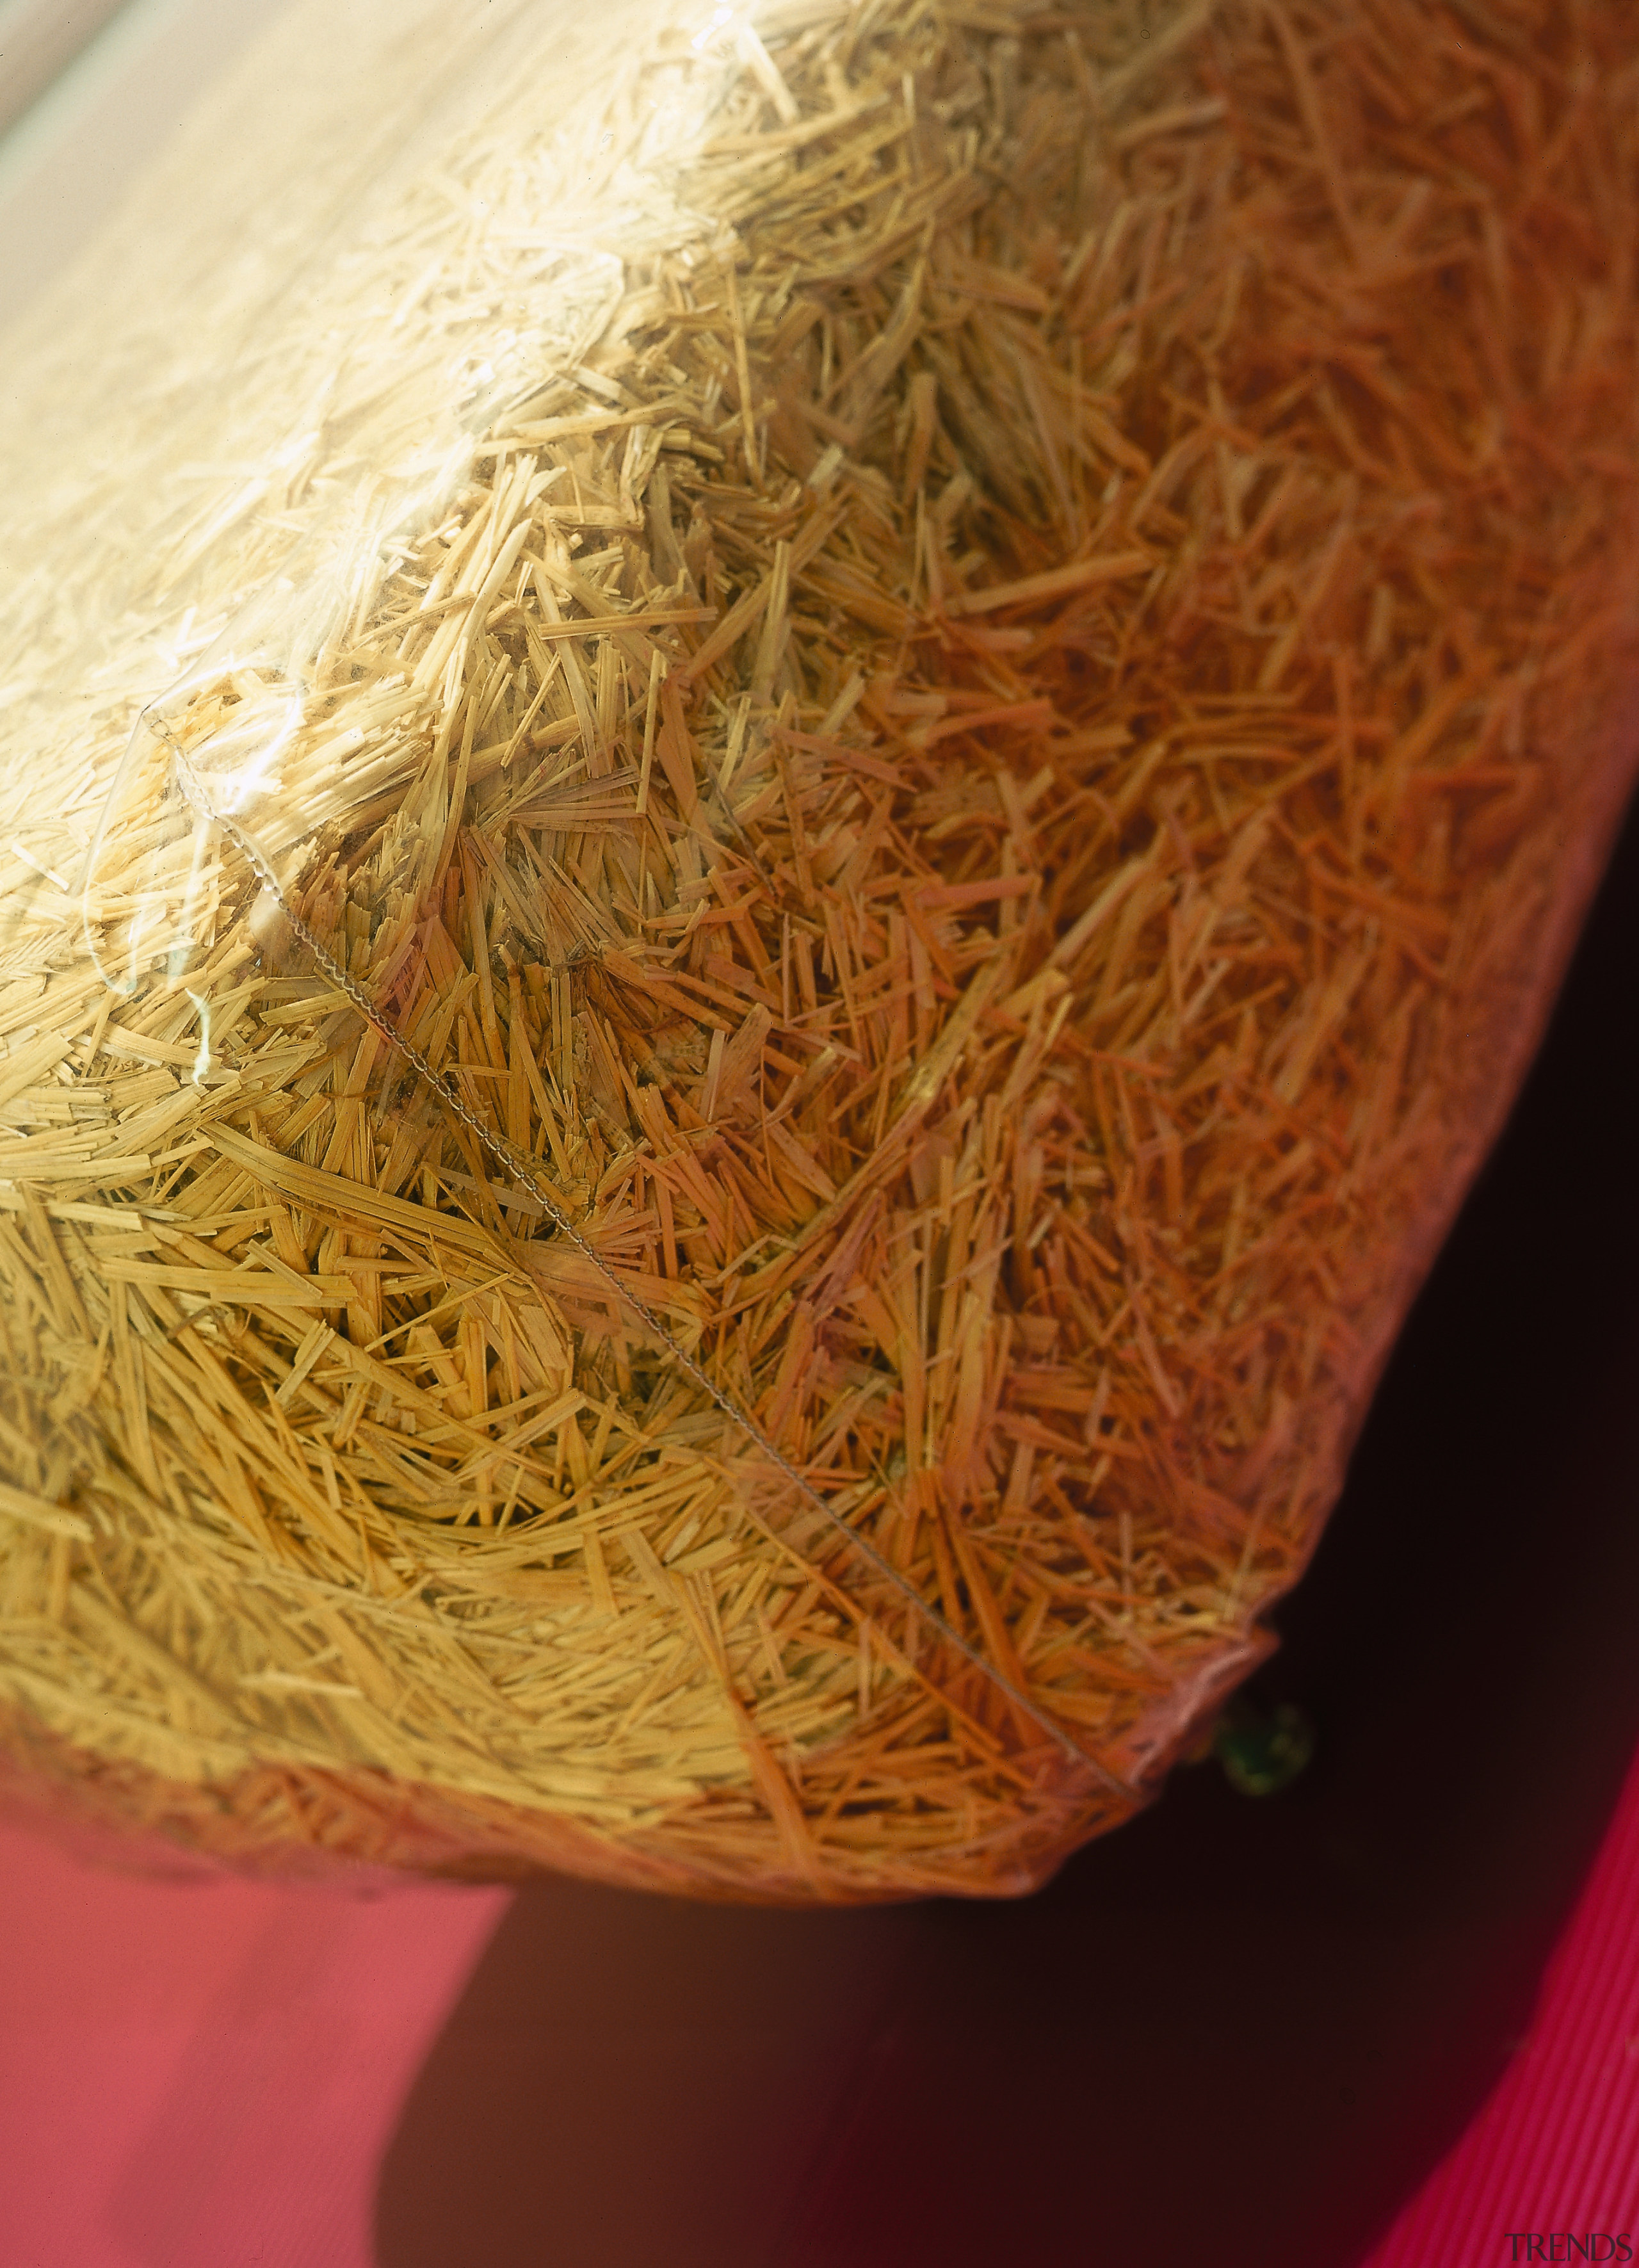 A close up view of the stools. - straw, brown